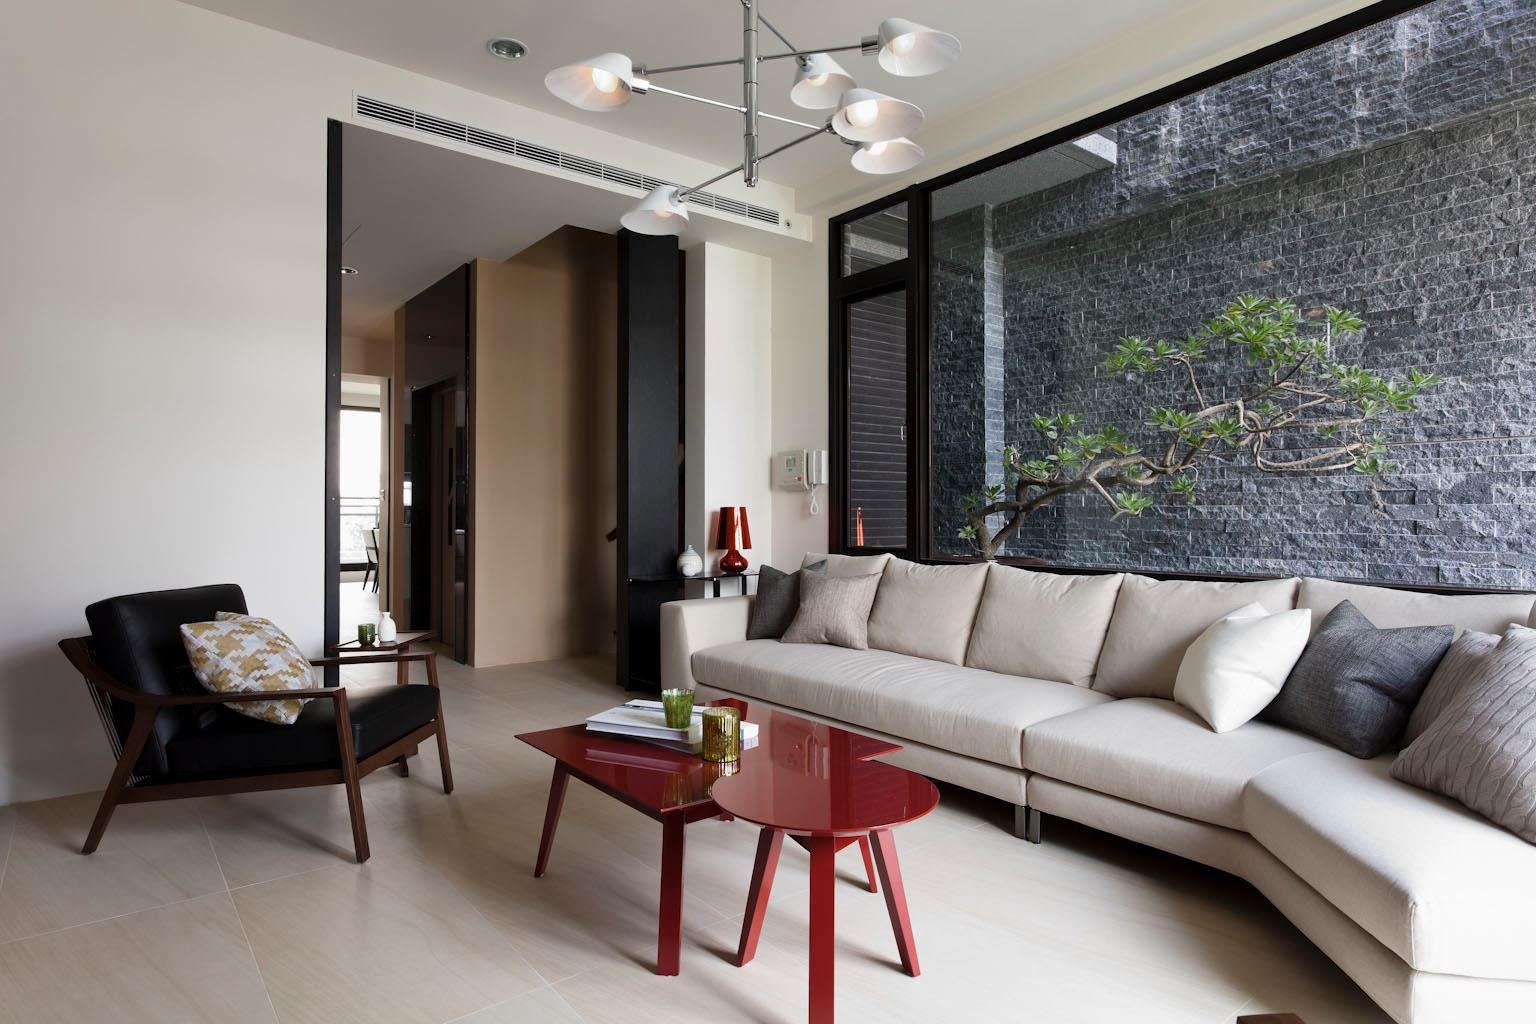 Home Design Inside some stunningly beautiful examples of modern asian minimalistic decor